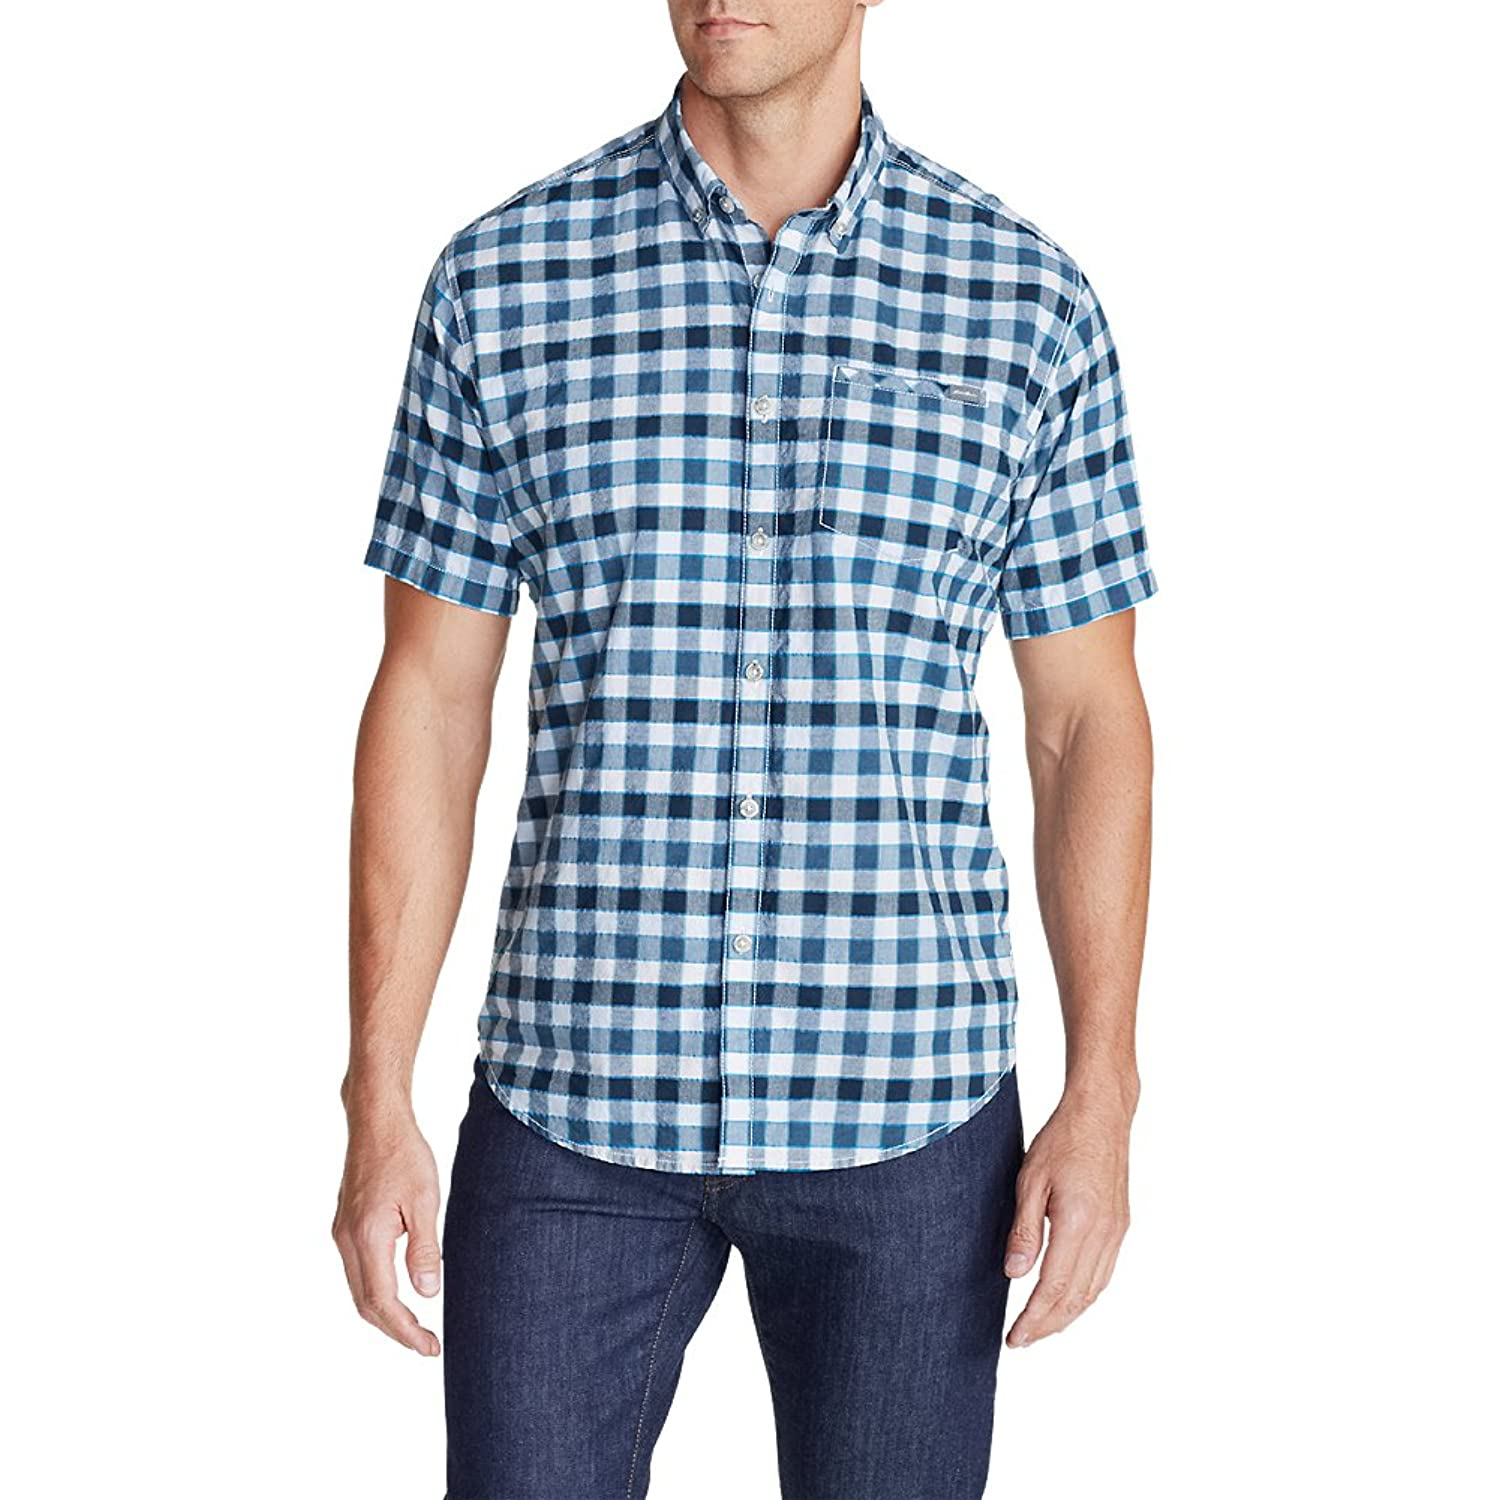 Eddie bauer men 39 s bainbridge ii short sleeve seersucker for Mens short sleeve seersucker shirts